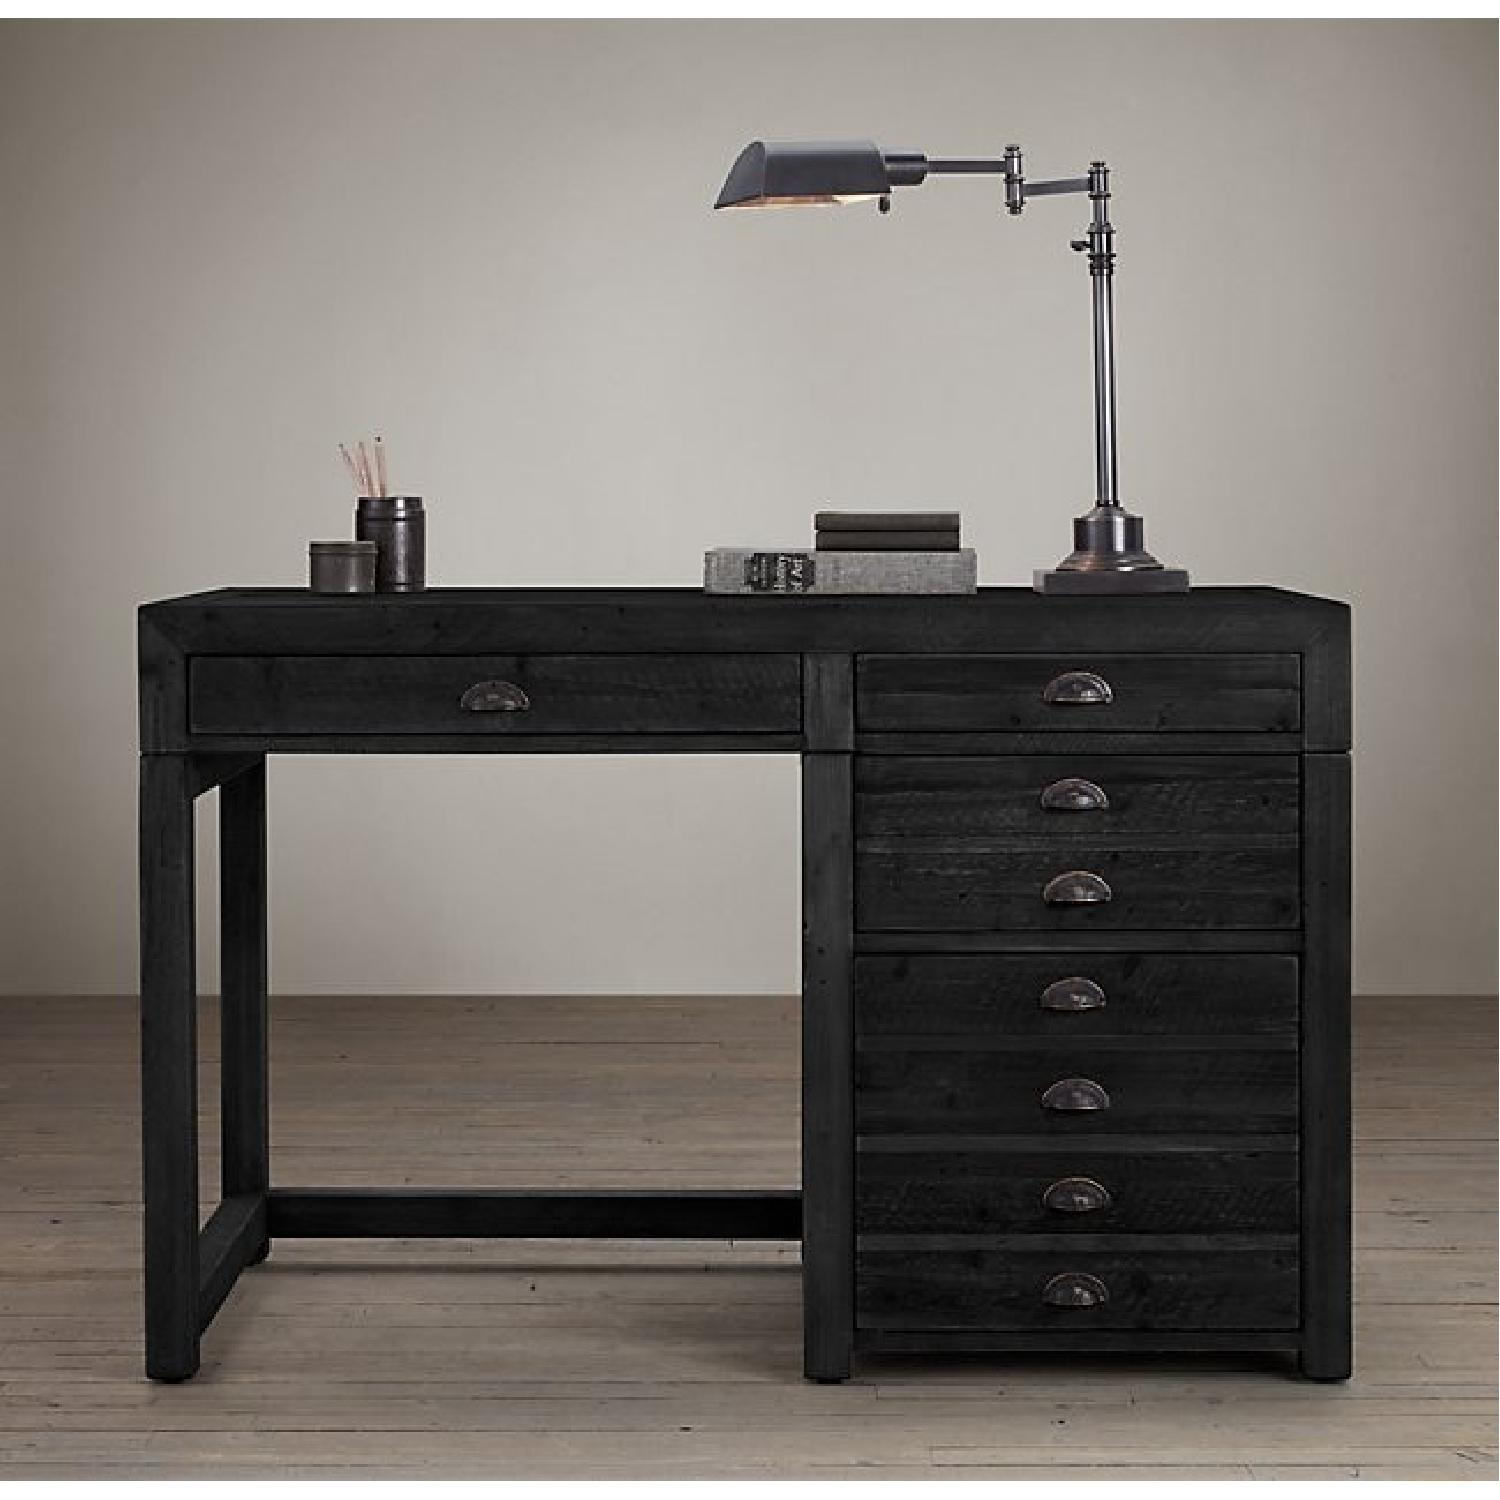 Restoration Hardware Printmaker's Wooden Desk-1